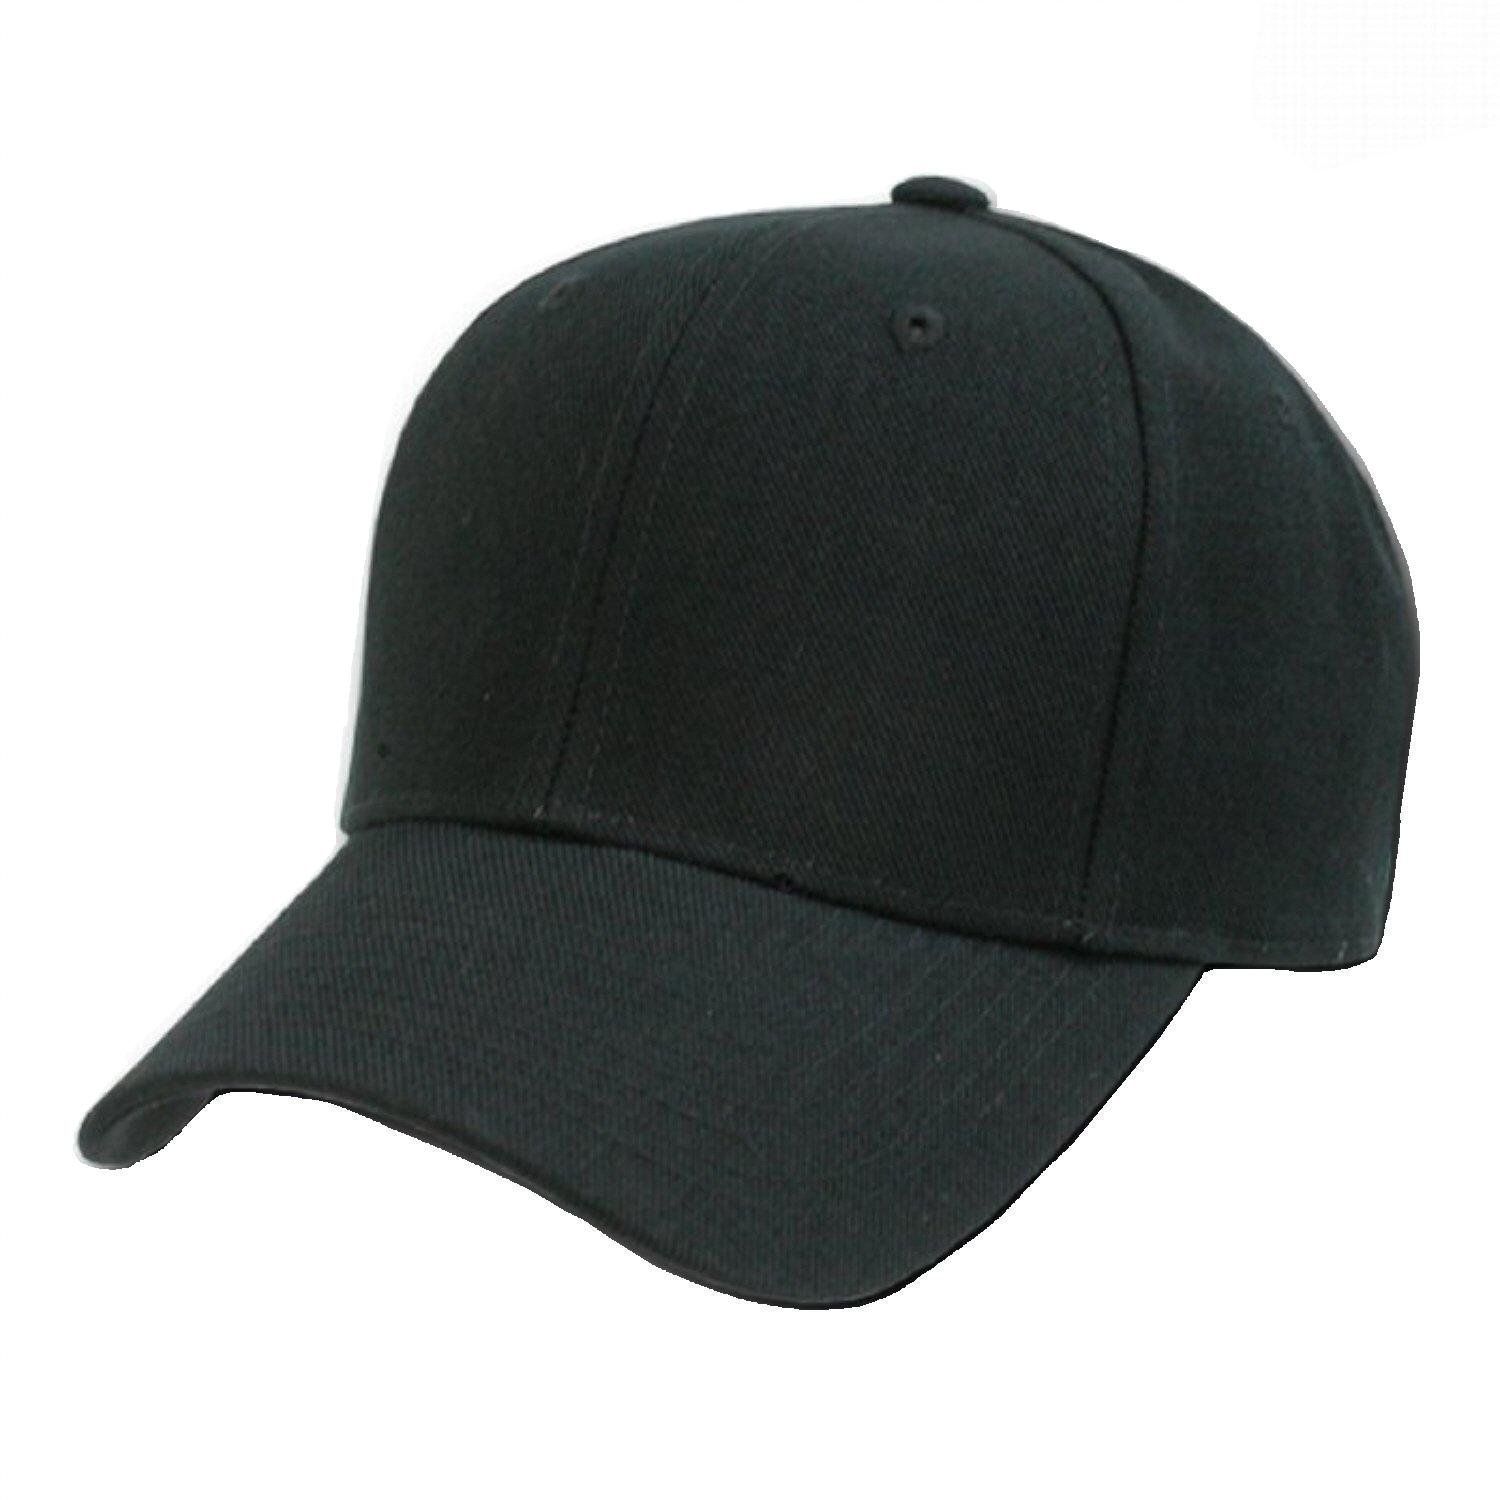 Wholesale Blank New Era Hats China 1525bad06